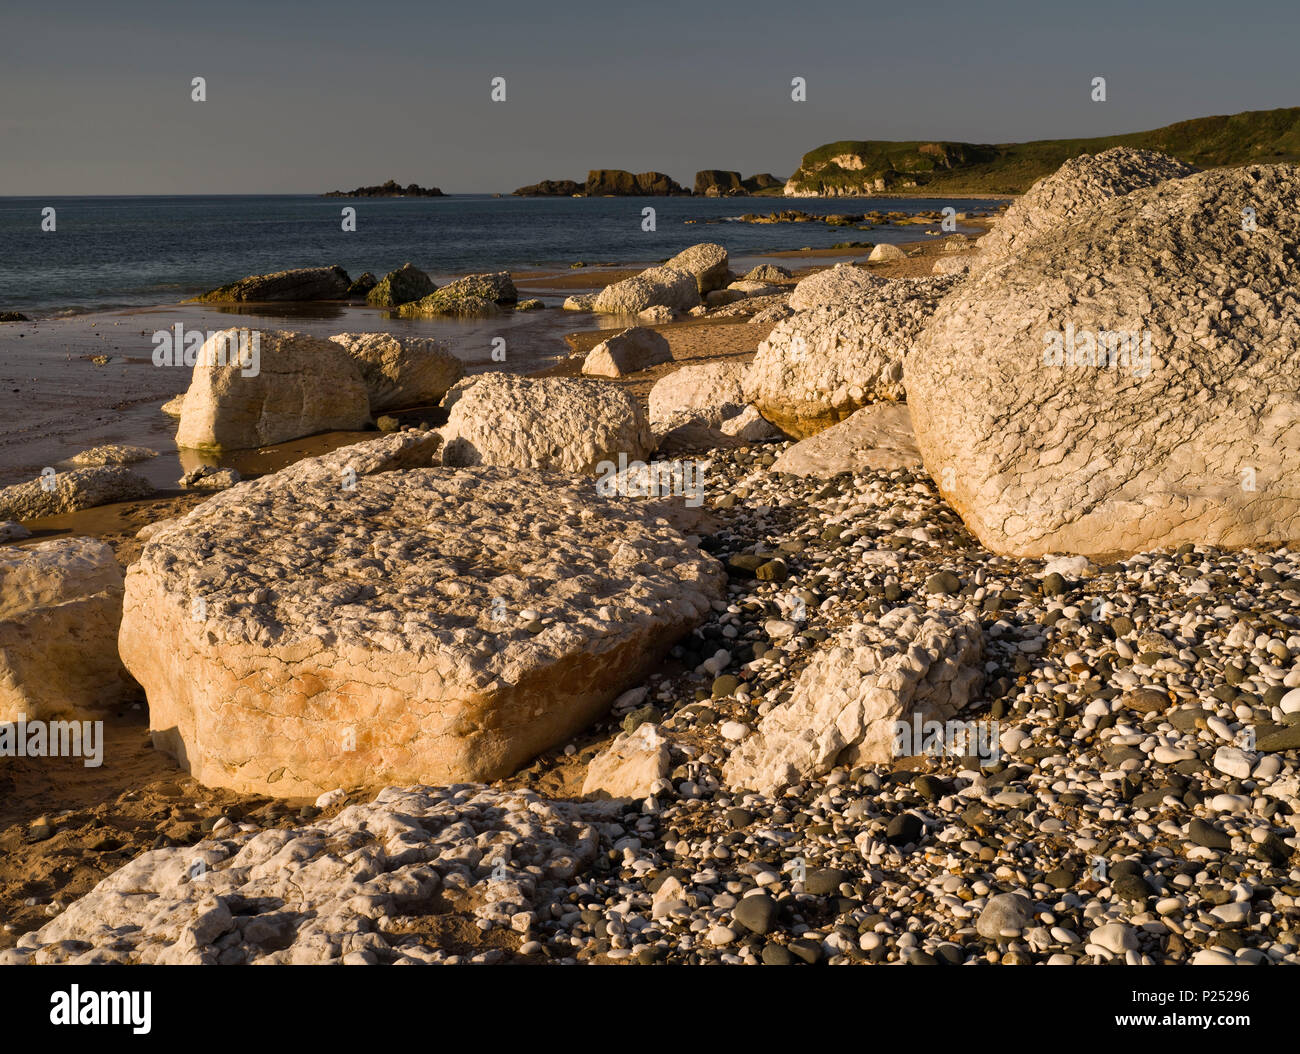 Northern Ireland, Antrim, Causeway Coast, sandy beach with white mussel limestones in the White park Bay - Stock Image